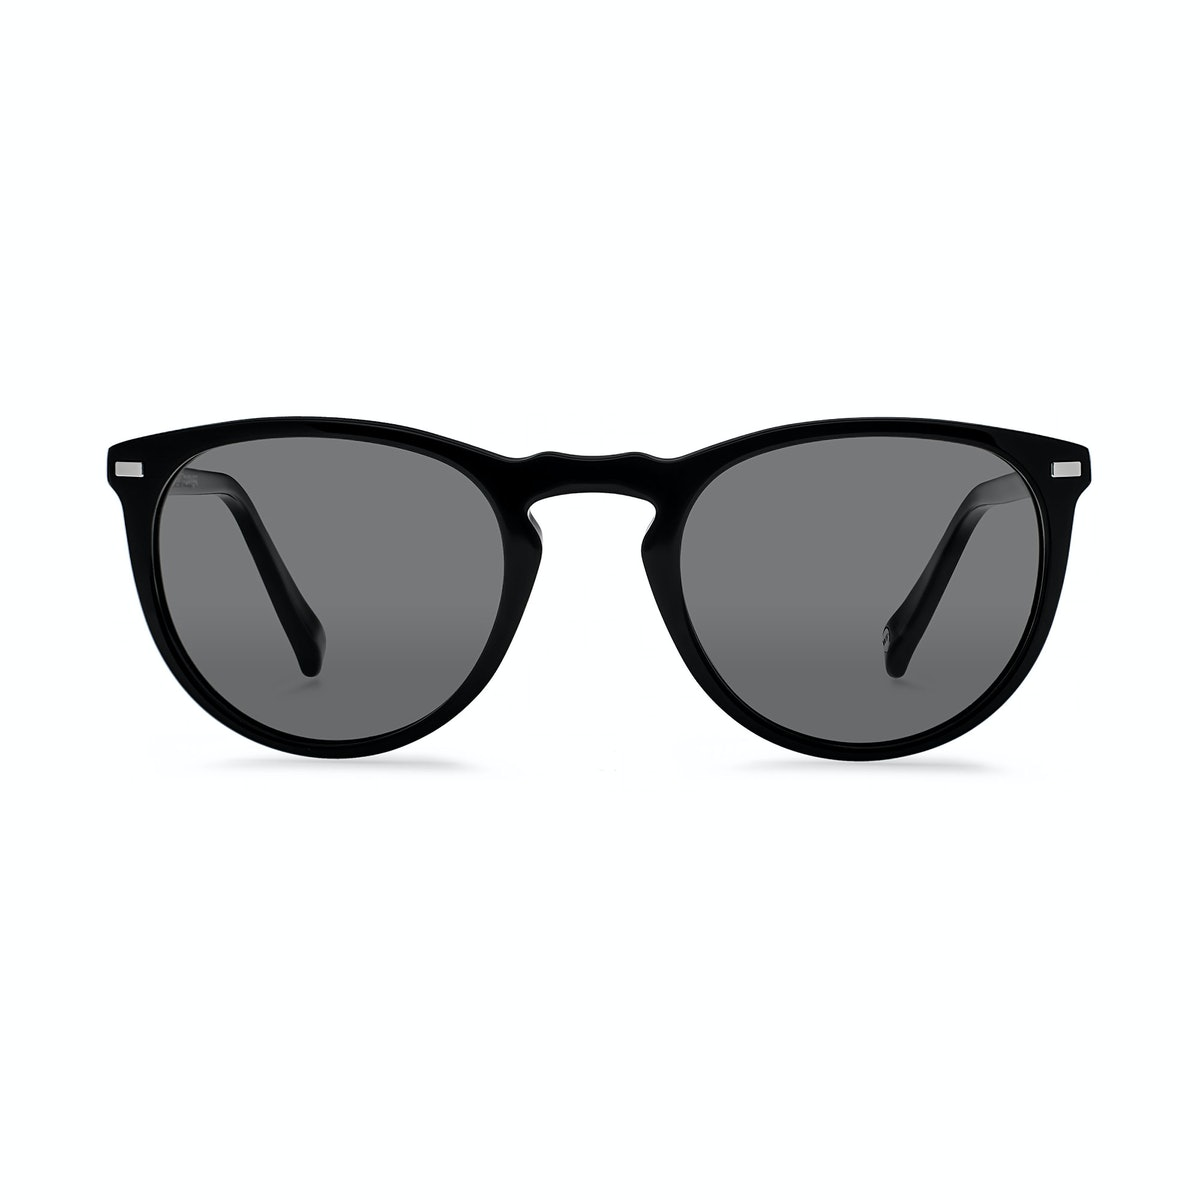 Warby Parker x Beck sunglasses